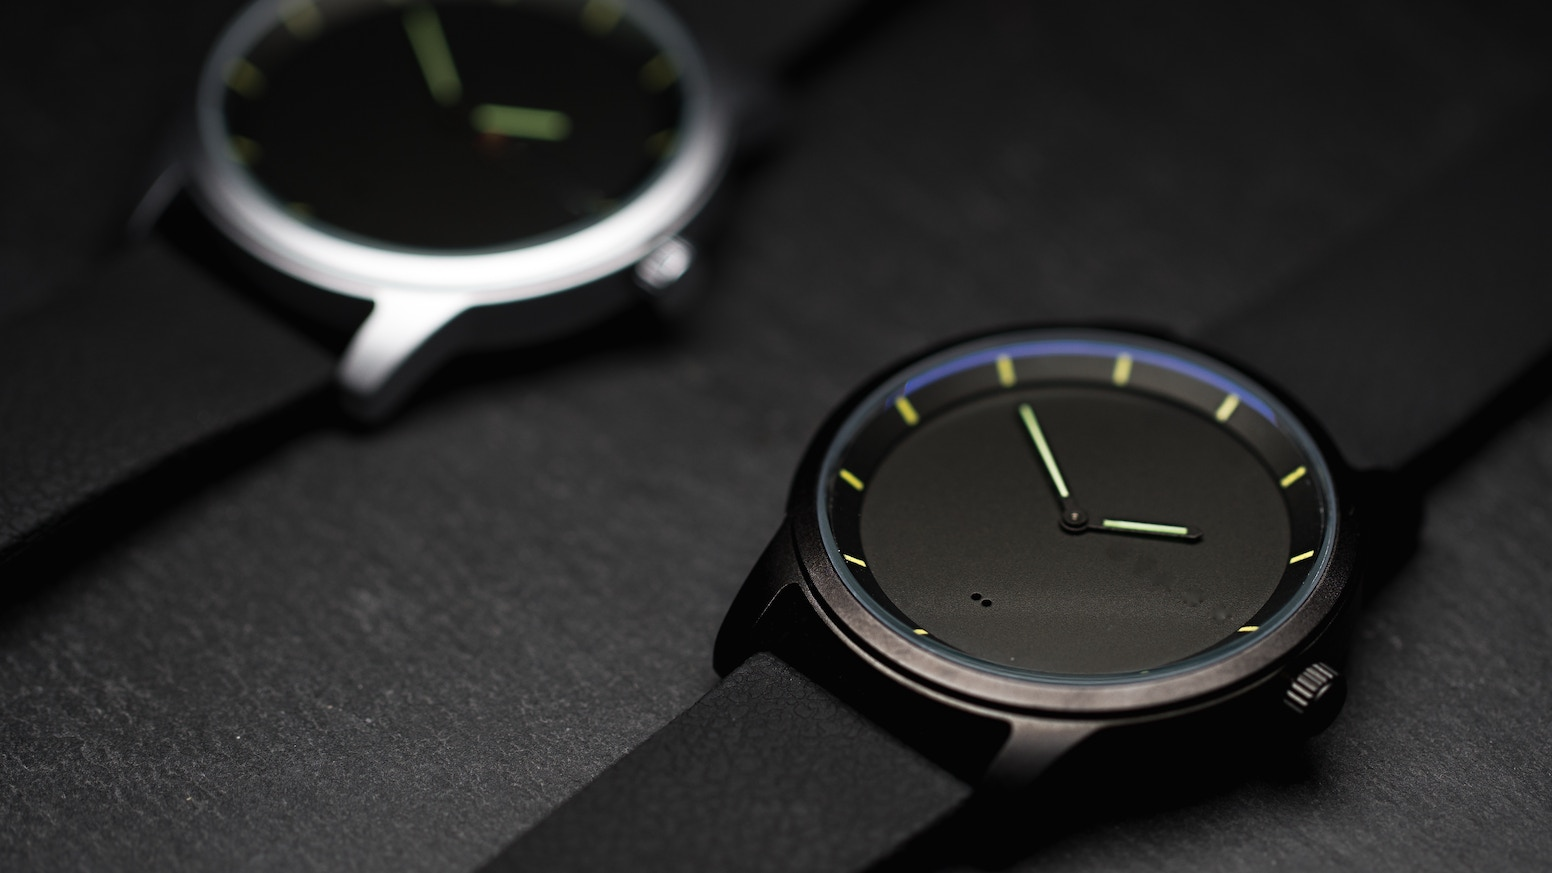 c2fb9dcab An everyday water-resistant minimalist smartwatch. Track your steps, sleep,  alarms and